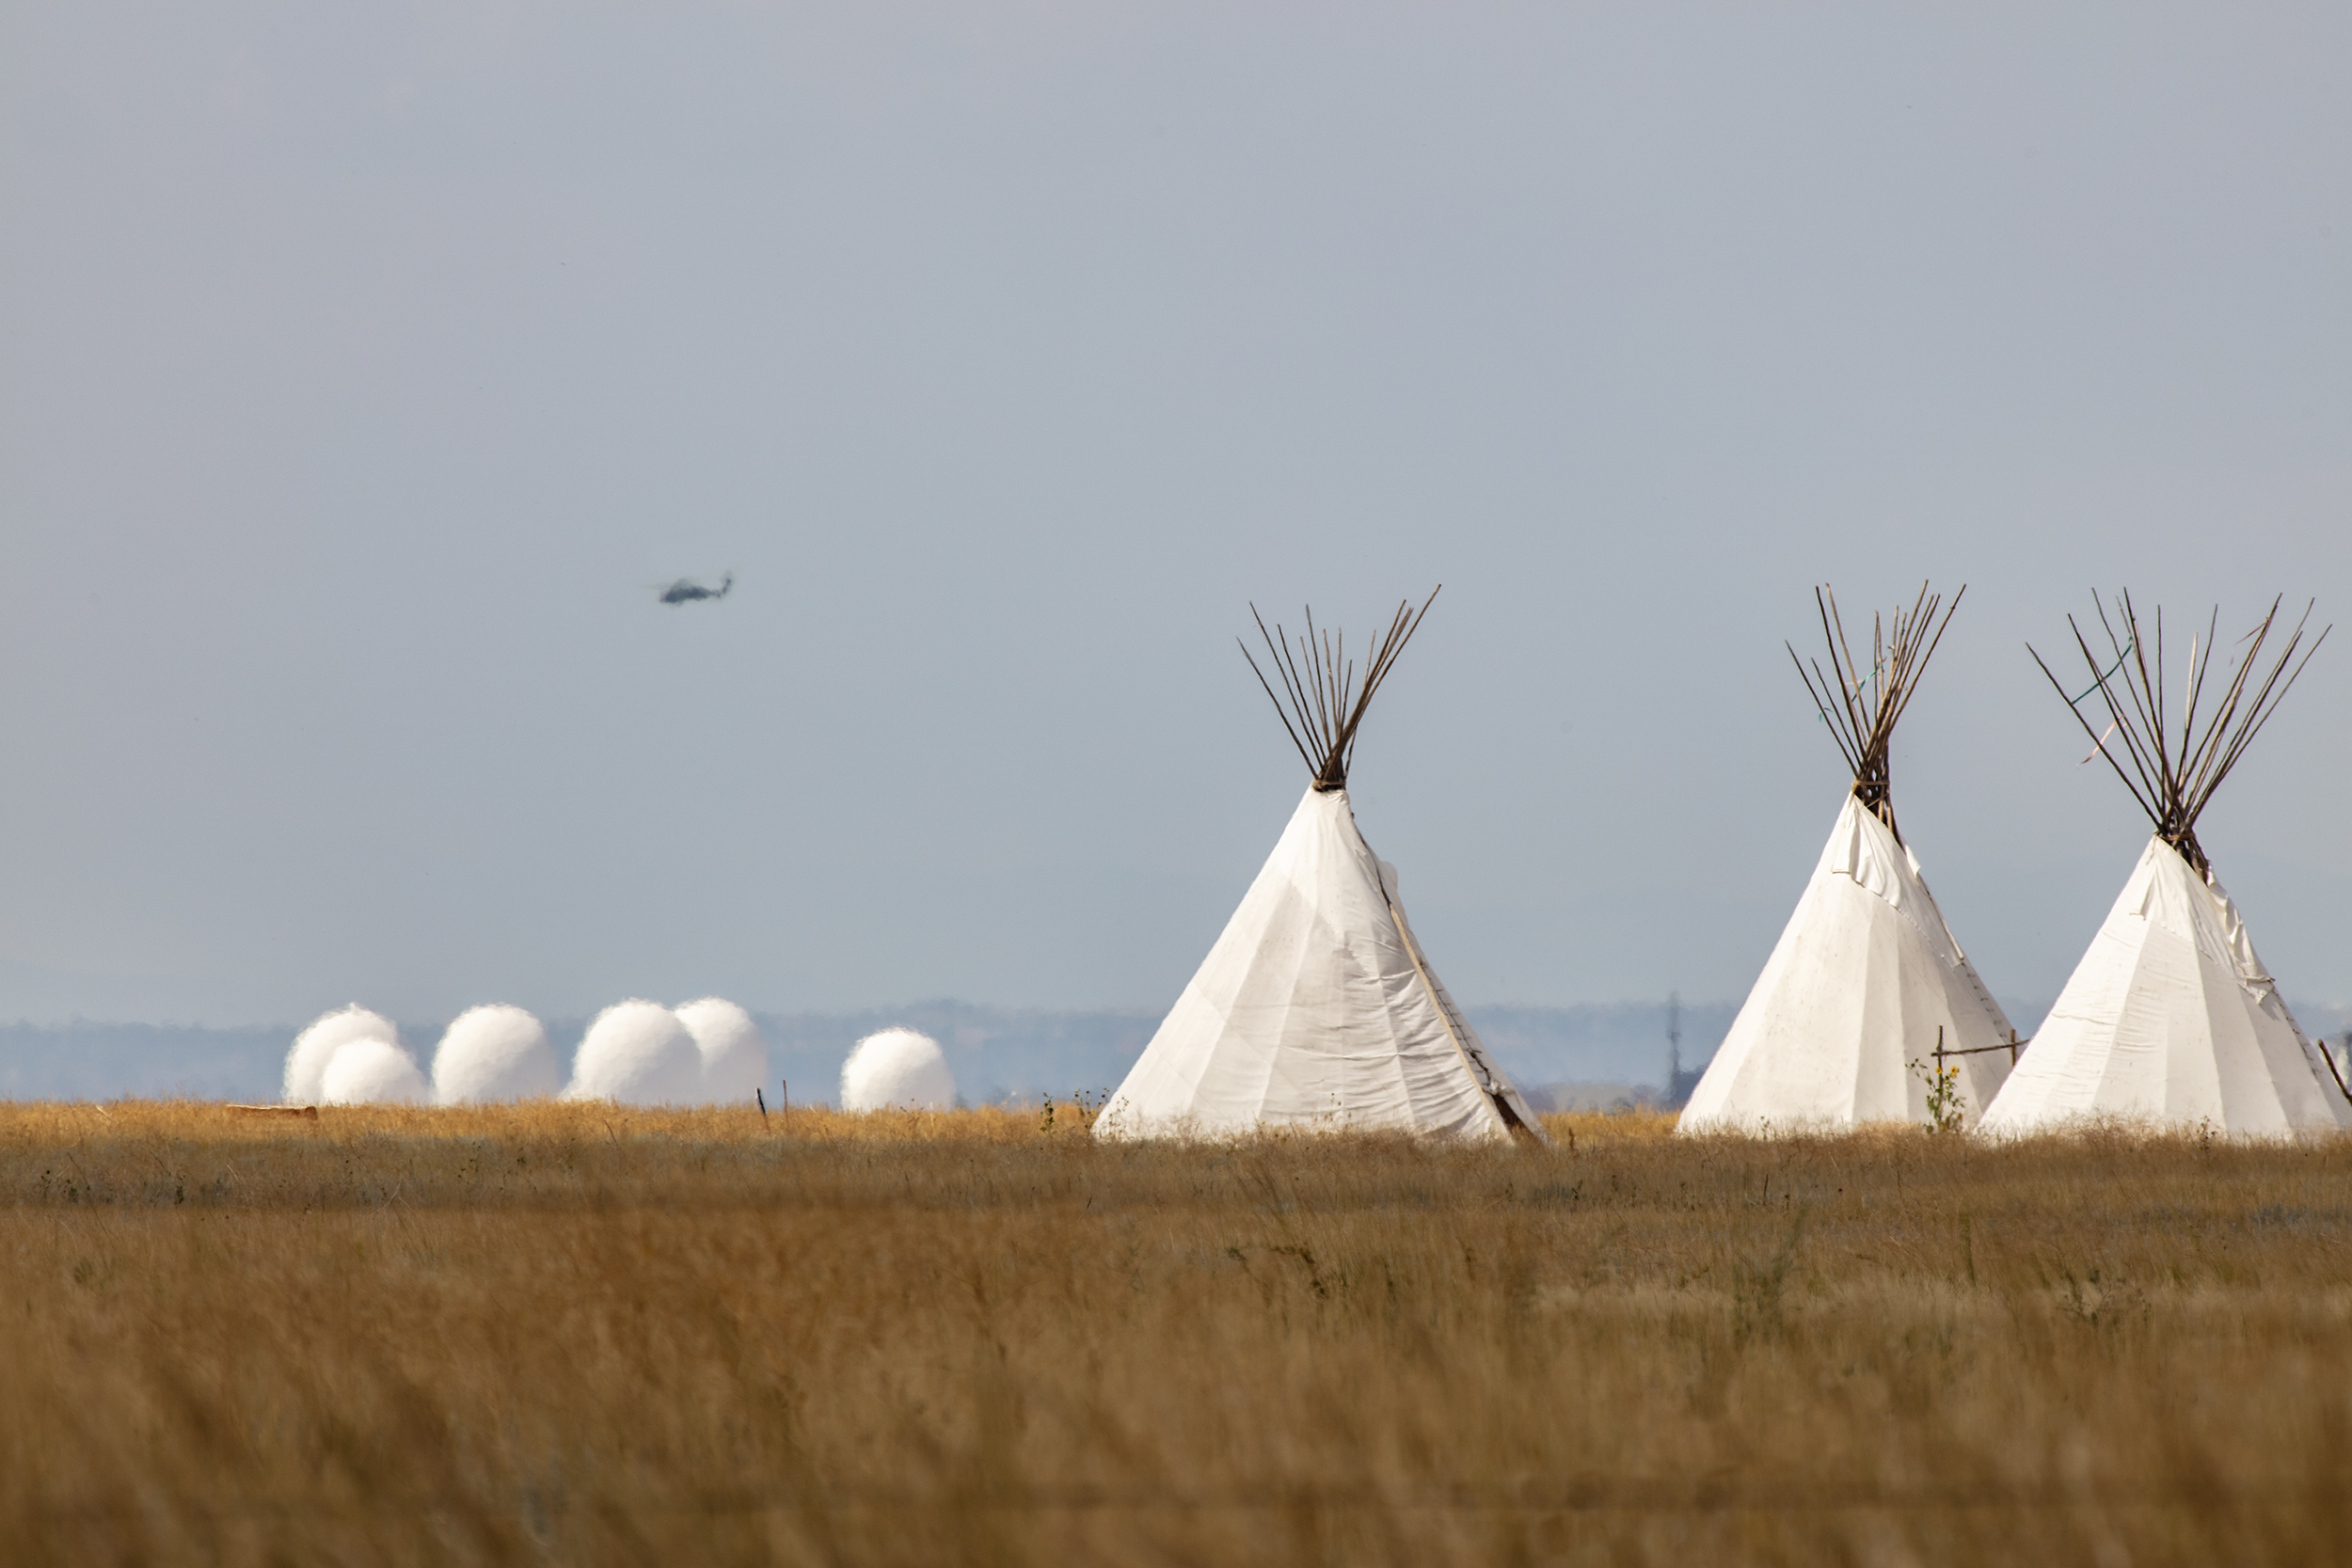 Military Radomes used to track missile telemetry and space junk, Tee-Pee's, Blackhawk Helicopter.